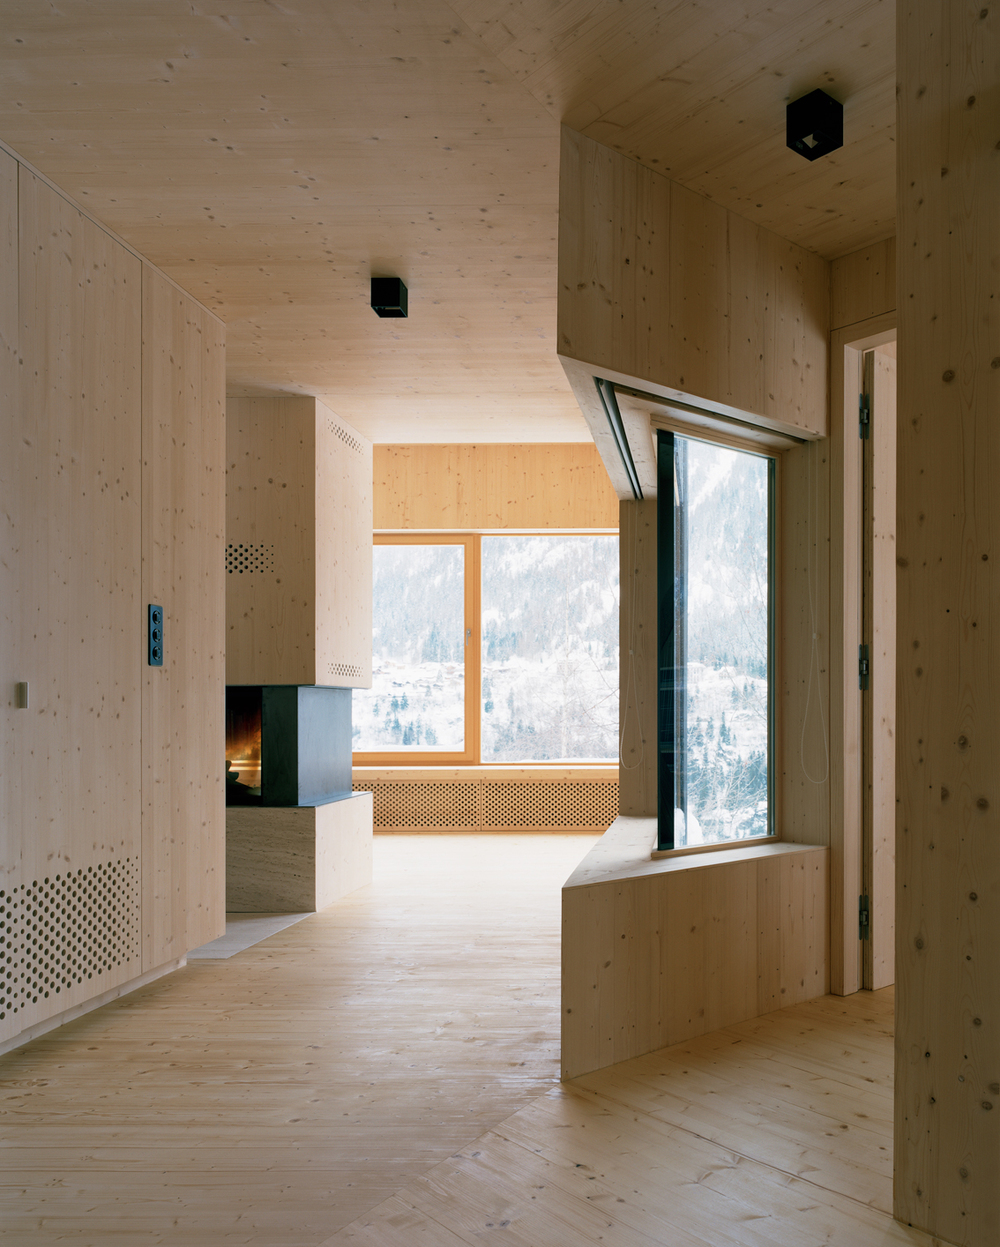 the-tree-mag_Maison aux Jeurs by lacroix chessex architectes_70.jpg